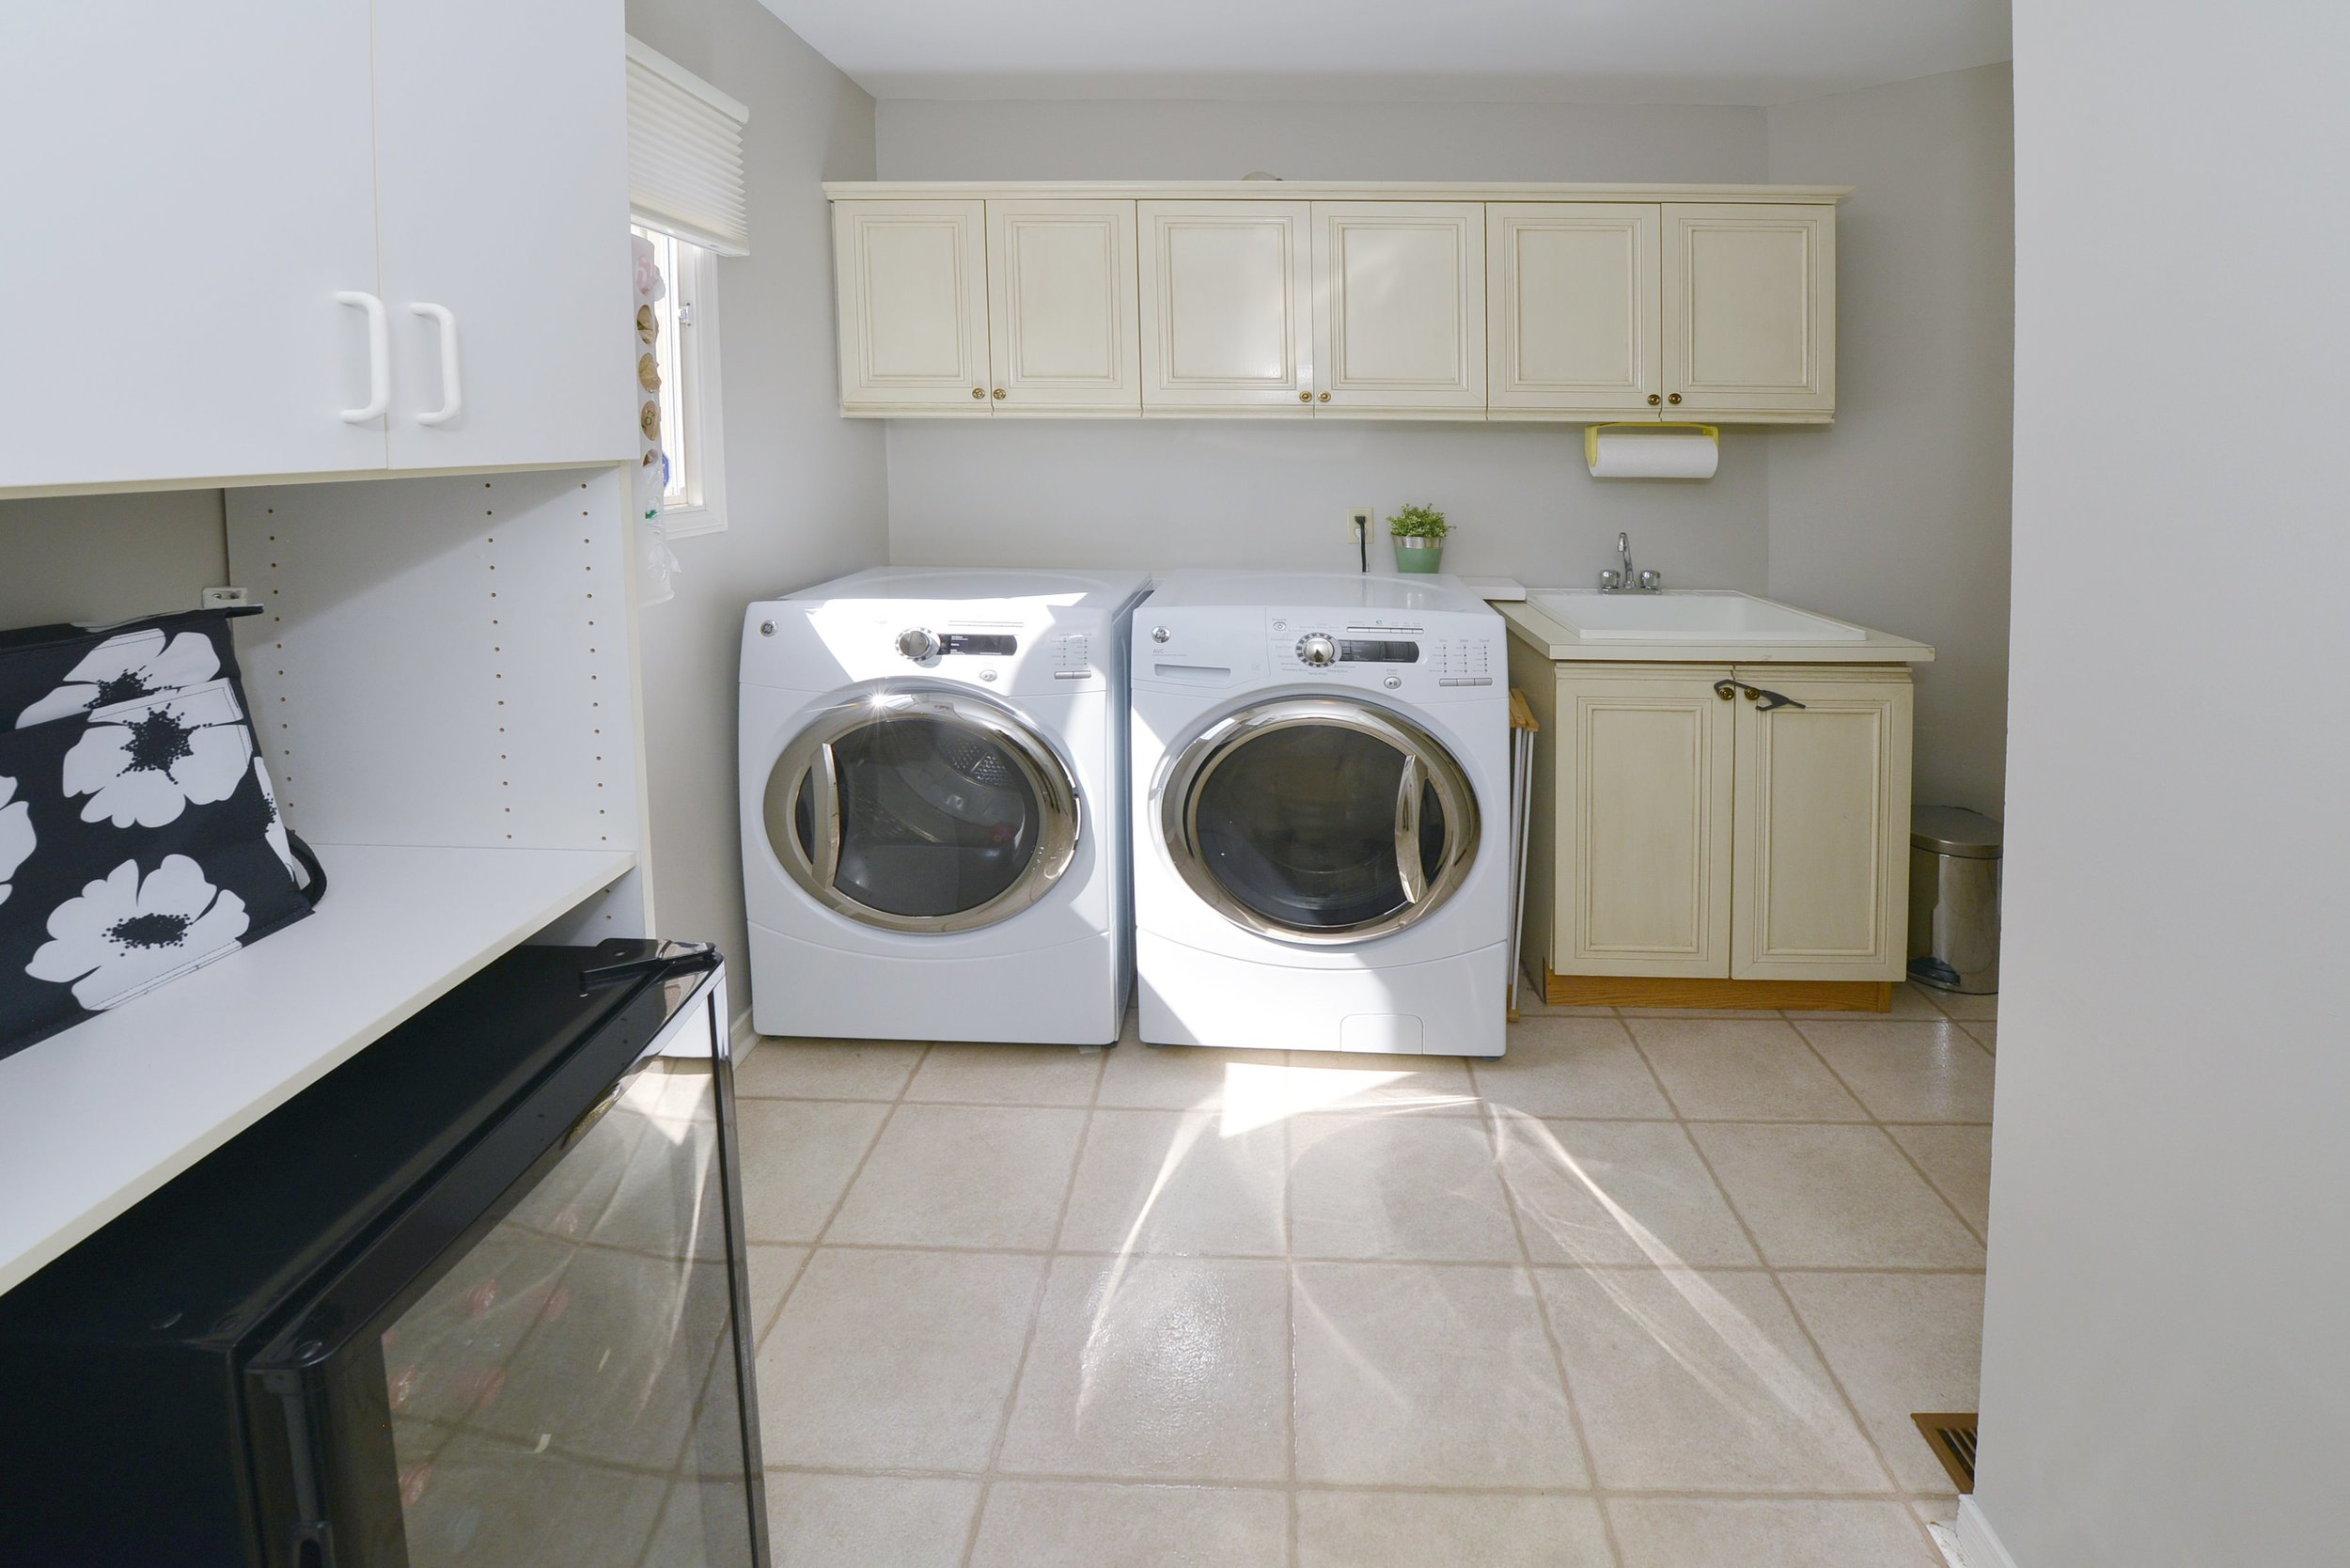 2767_guilford_crescent_MLS30538562_HID1121270_ROOMlaundryroom.jpg